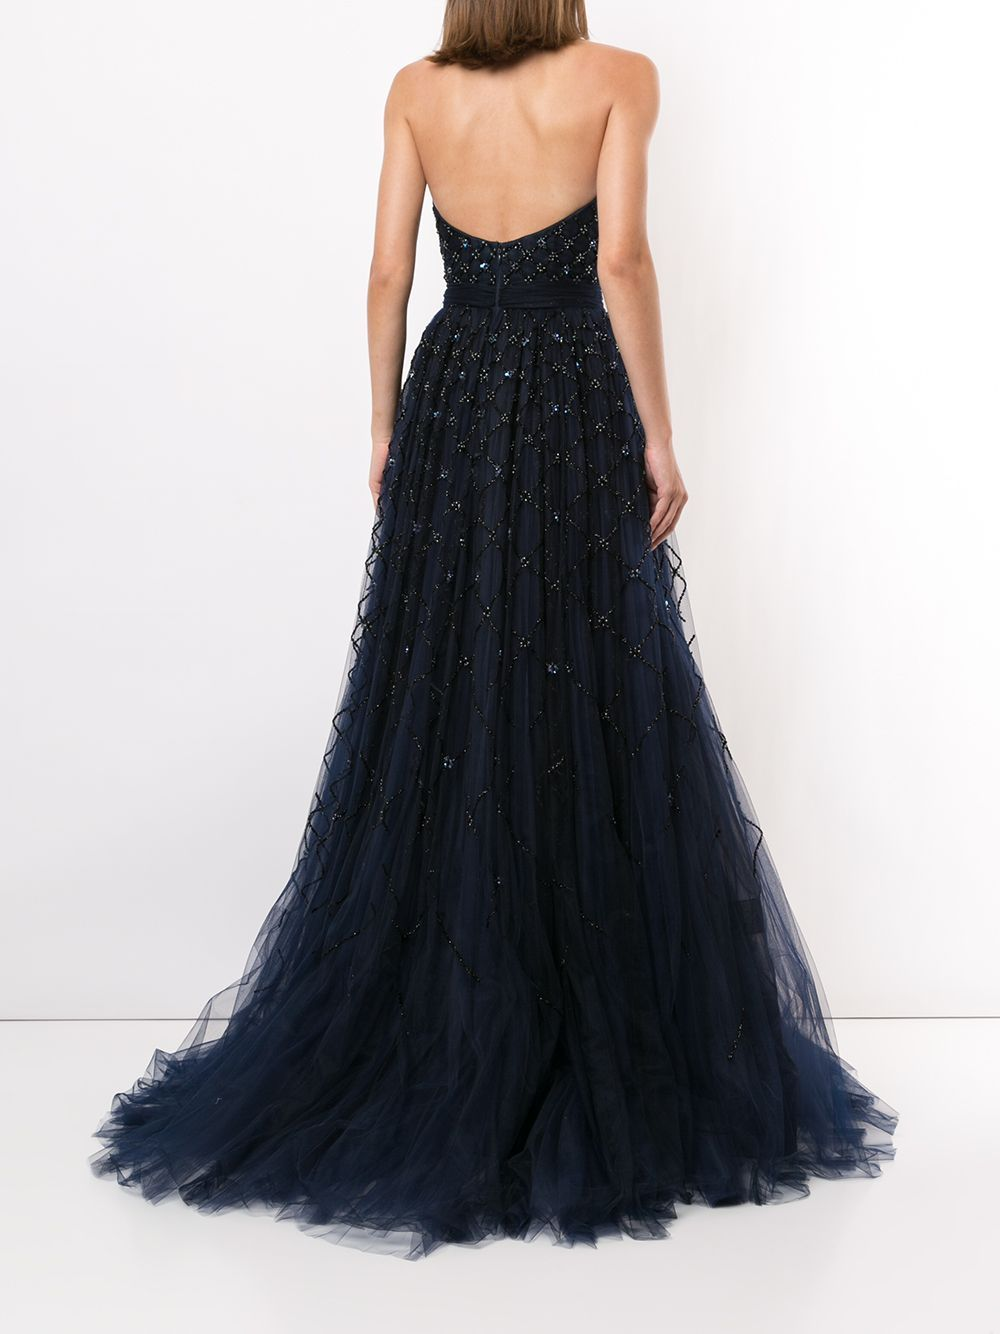 Carolina Herrera Bead Embellished Strapless Gown Farfetch Strapless Gown Backless Dress Formal Gowns [ 1334 x 1000 Pixel ]